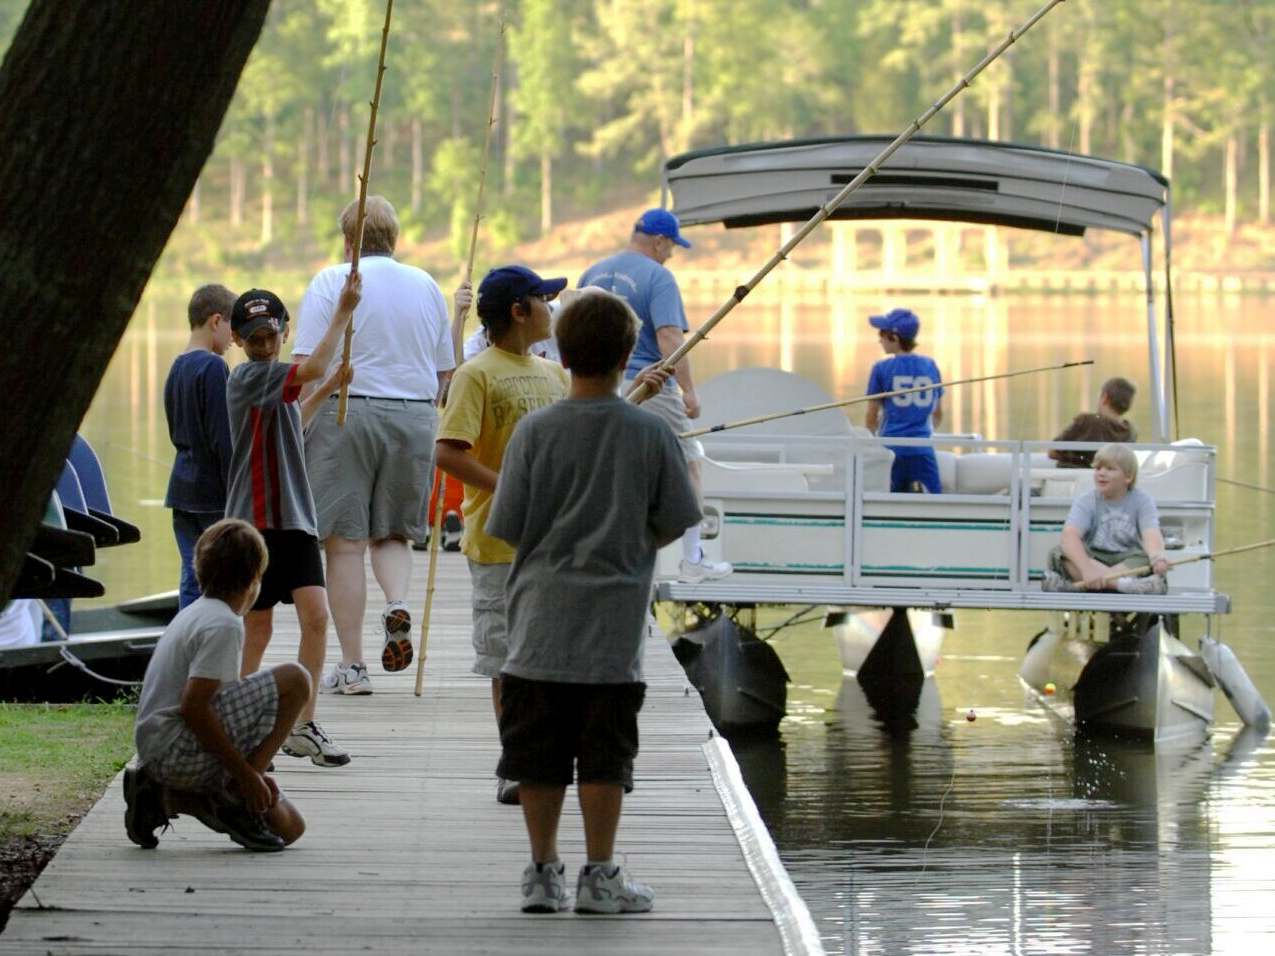 kids prepare to go fishing on thepontoon boat with adults